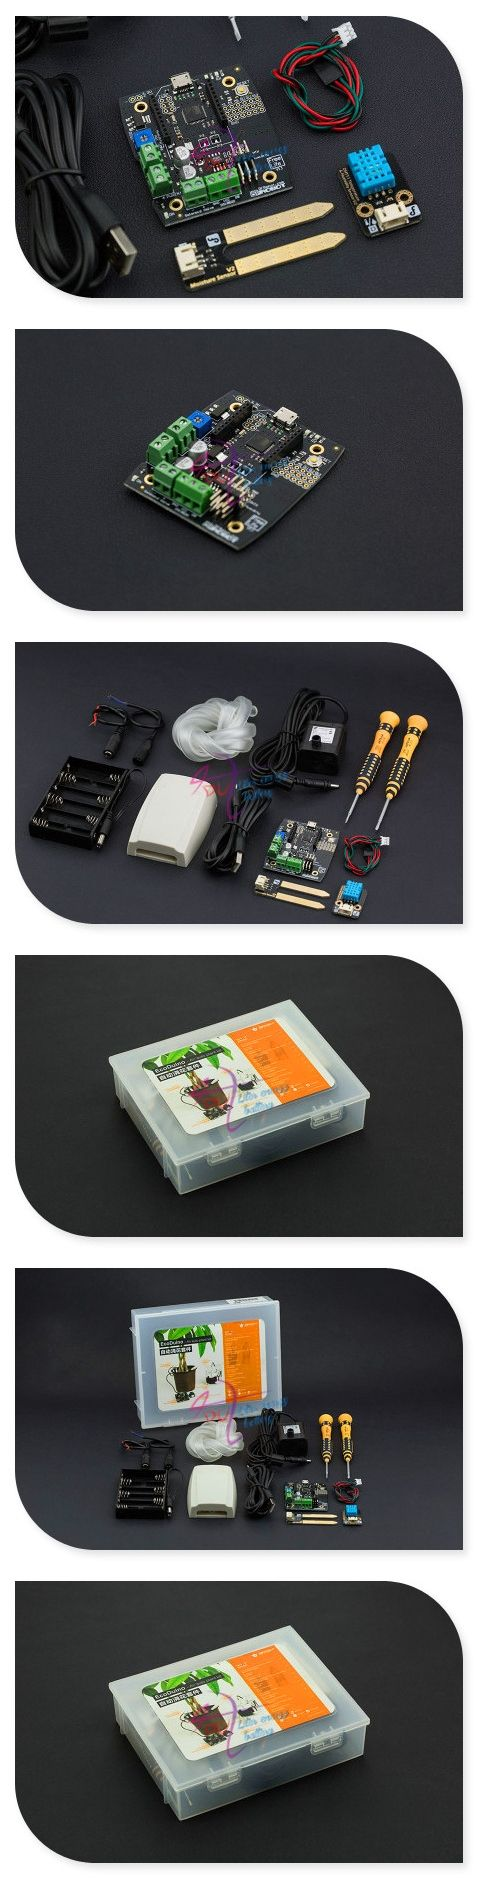 DFRobot 100% Genuine EcoDuino An Auto Planting Kit, with auto flower watering control board Temperature and Humidity Sensor etc.